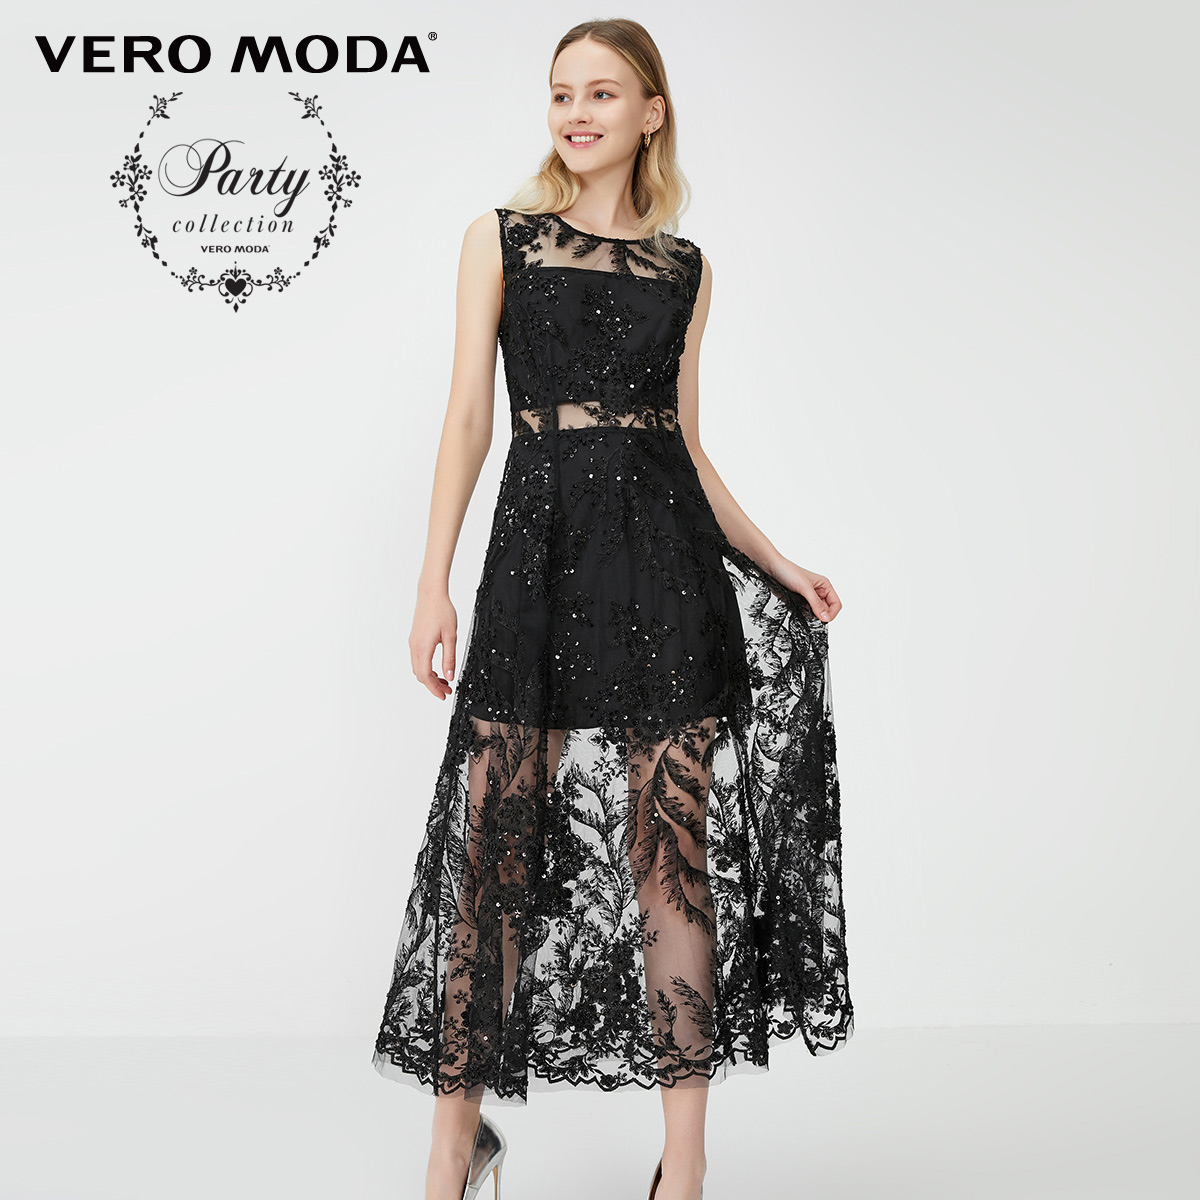 Vero moda2020 spring and summer new mesh embroidery beaded dress dress for women 32017a521